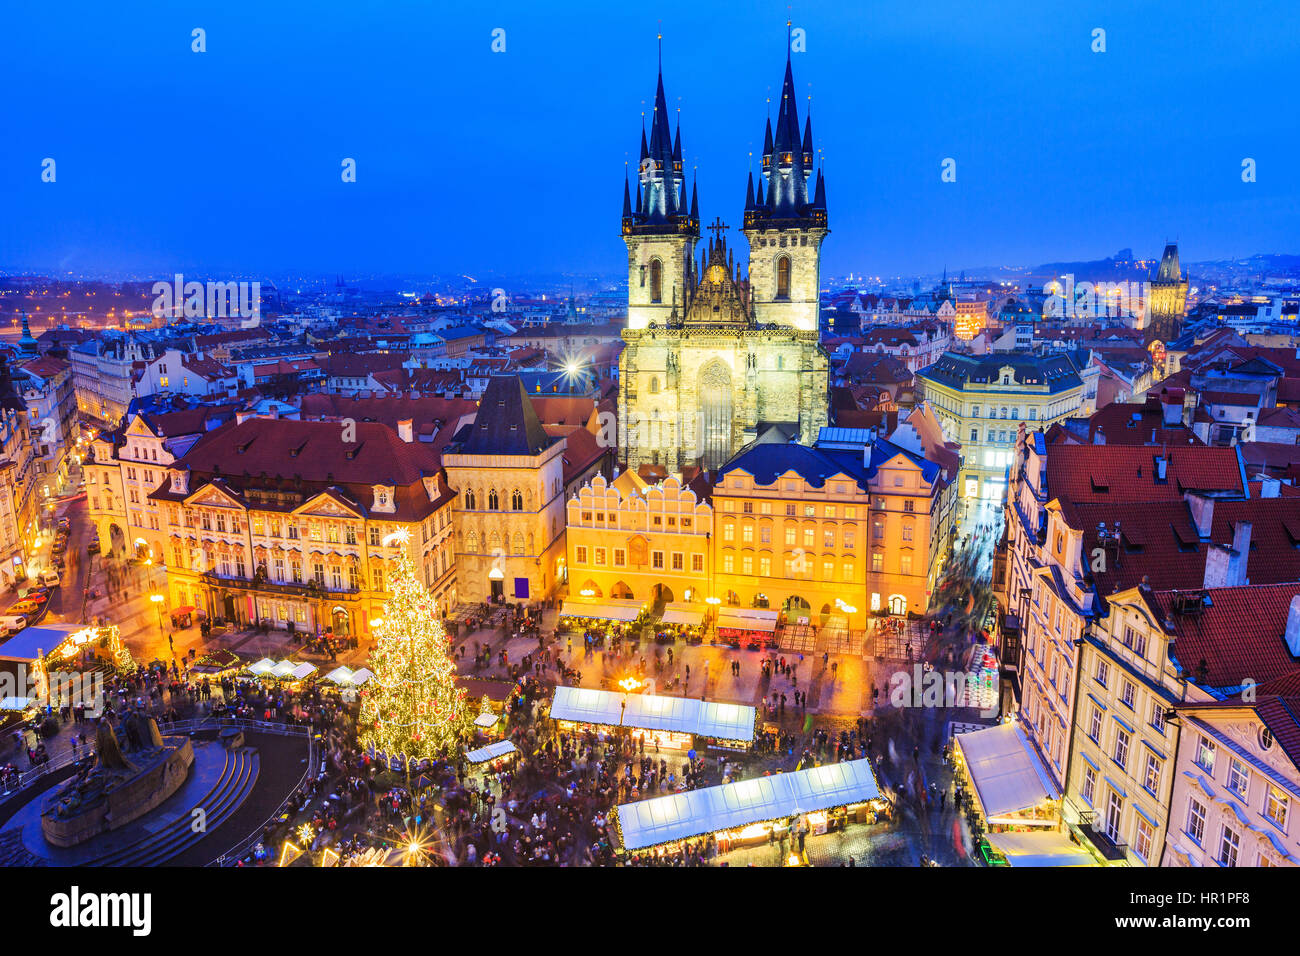 Prague, Czech Repubilc. Christmas market at Old Town Square. - Stock Image